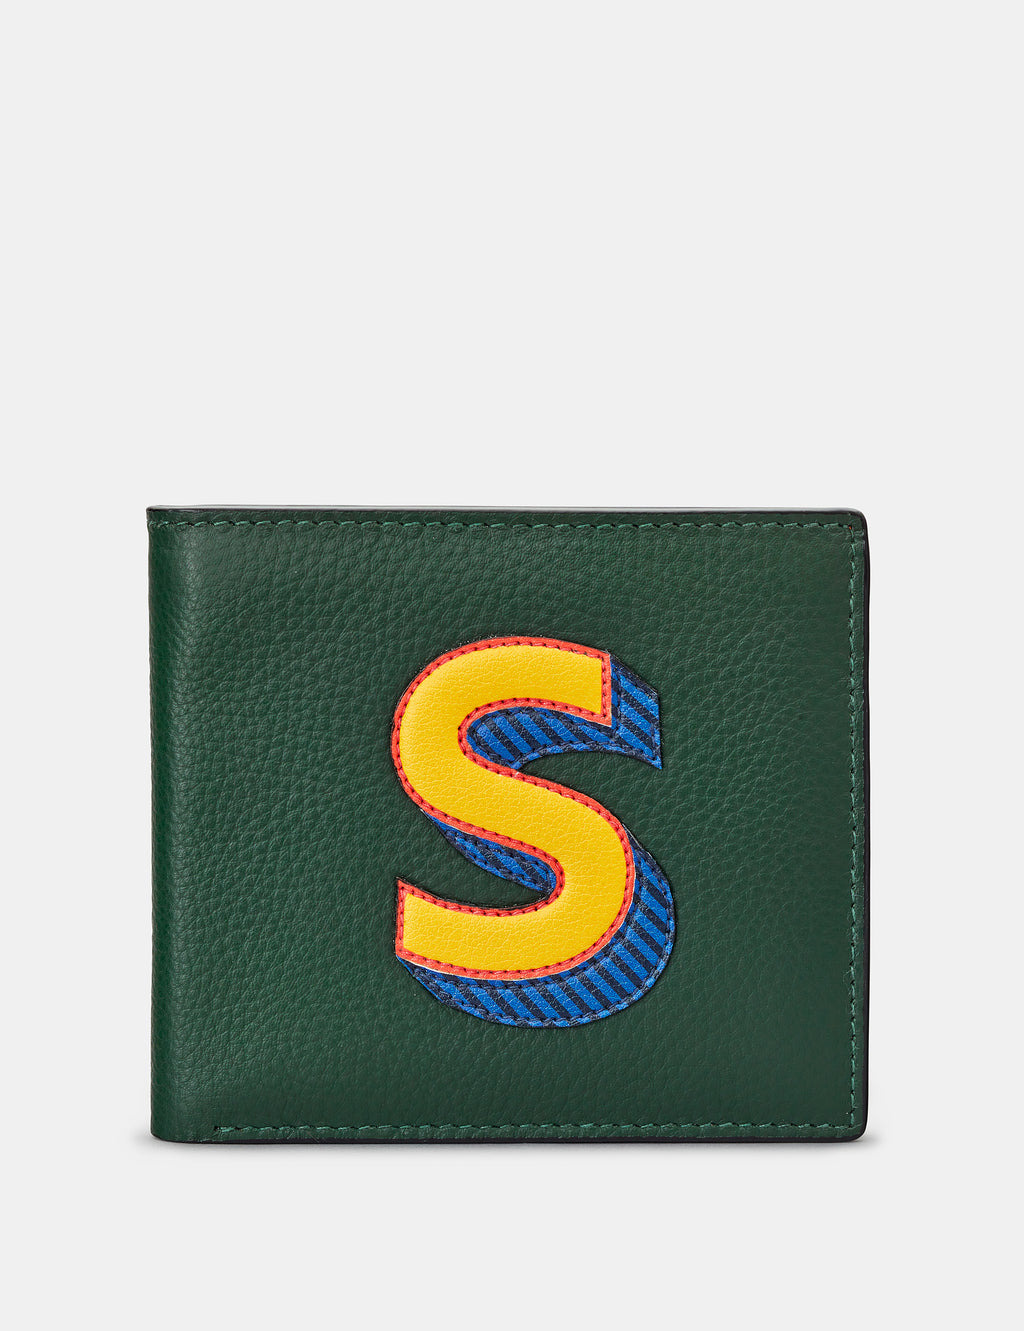 S Initial Green Leather Wallet